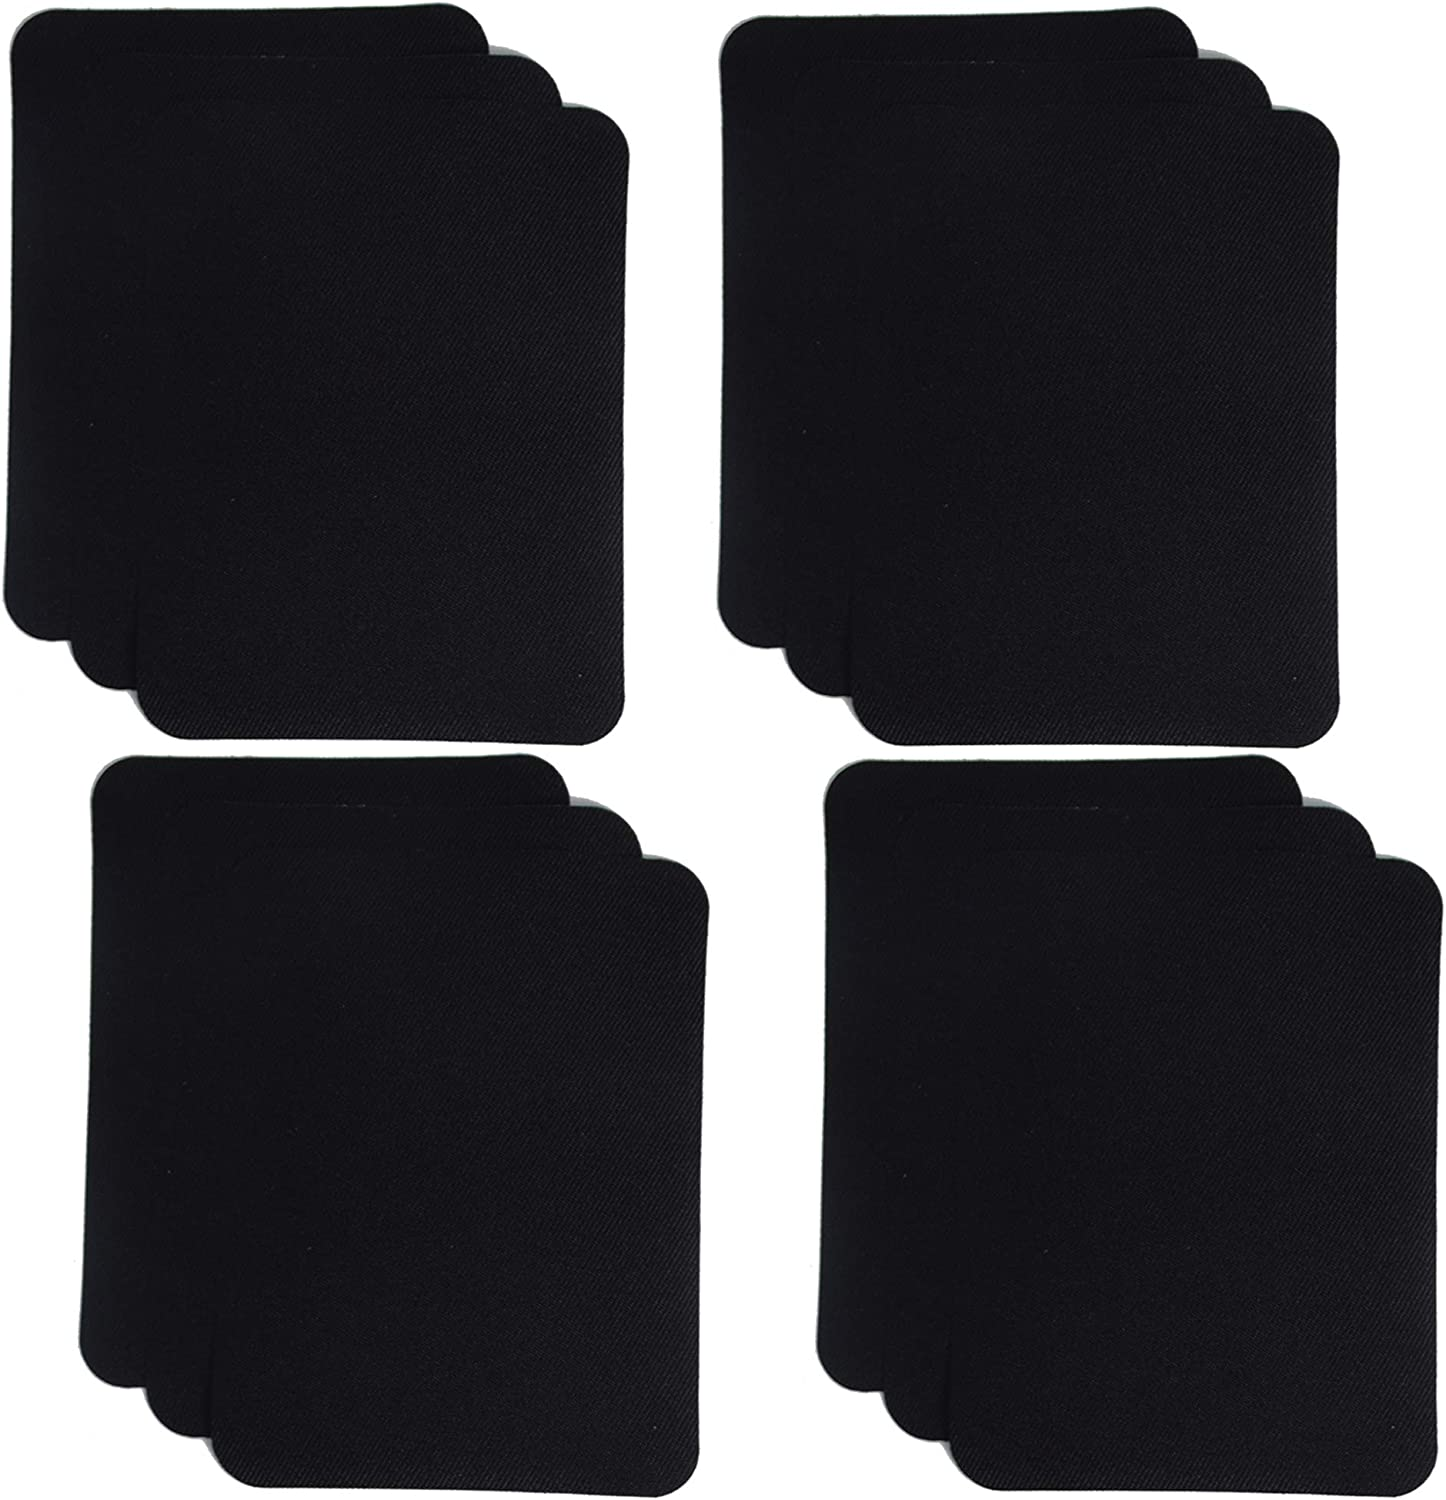 Denim Patches for Jeans Kit,Iron for Inside Jeans /& Clothing Repair Black SHELCUP 4.9inX3.8in 12PCS Iron on Patches for Clothing Repair